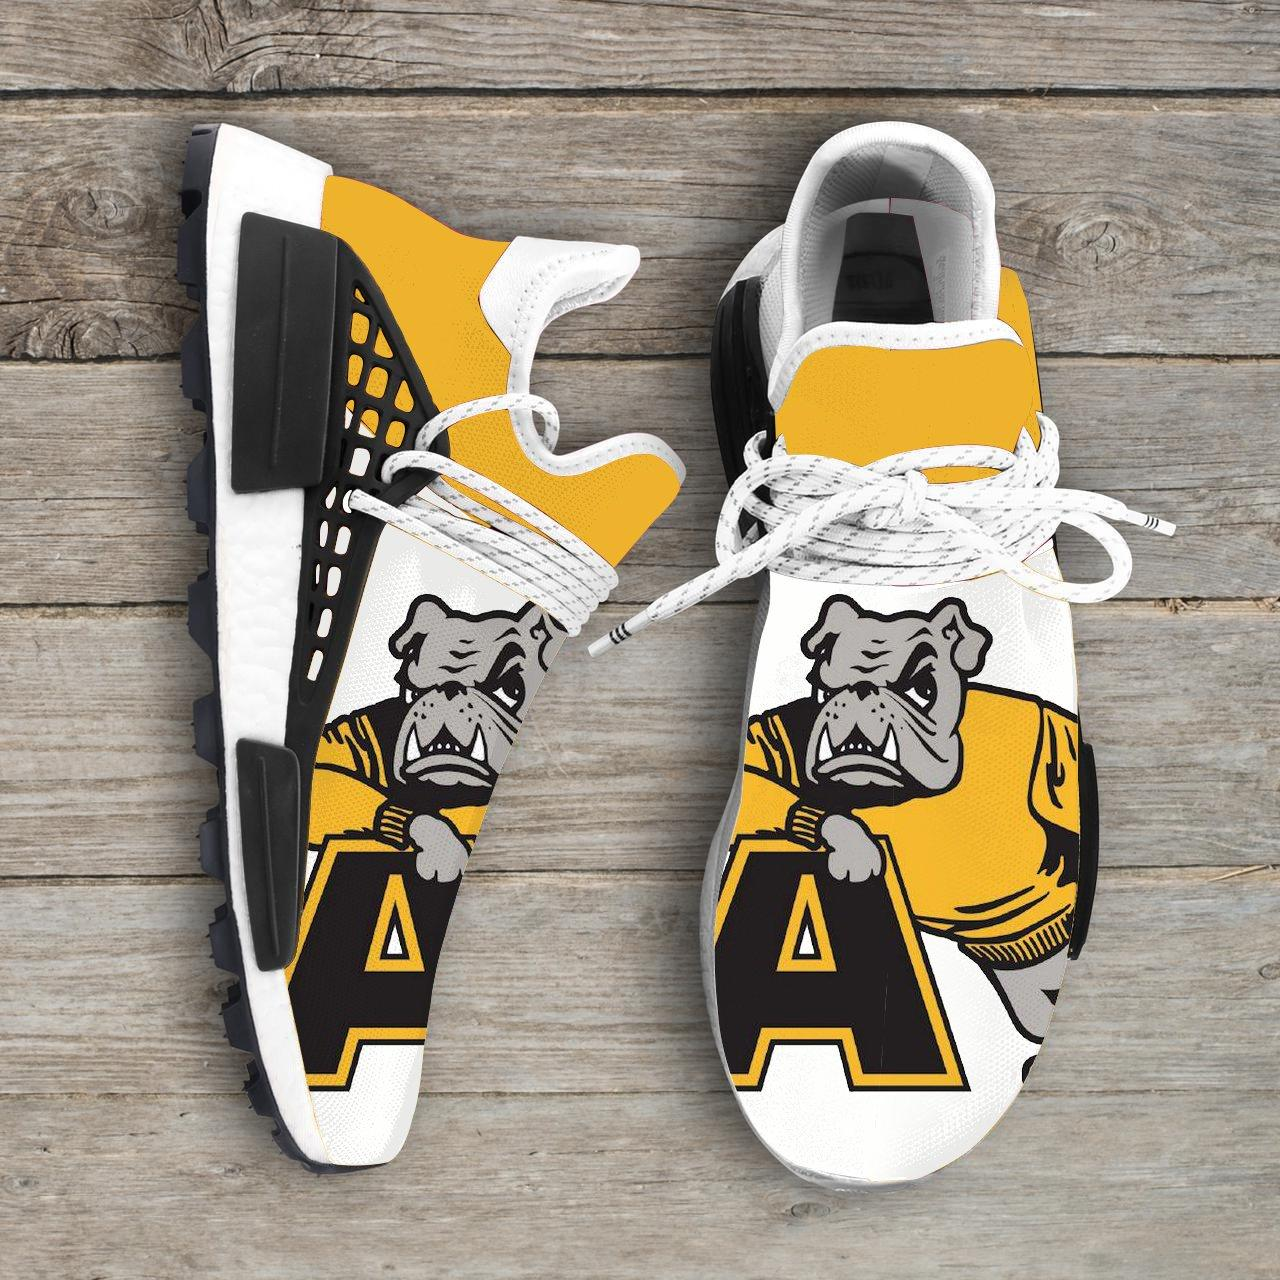 Adrian College Bulldogs NCAA NMD Human Race Sneakers Sport Shoes Shoes 2020